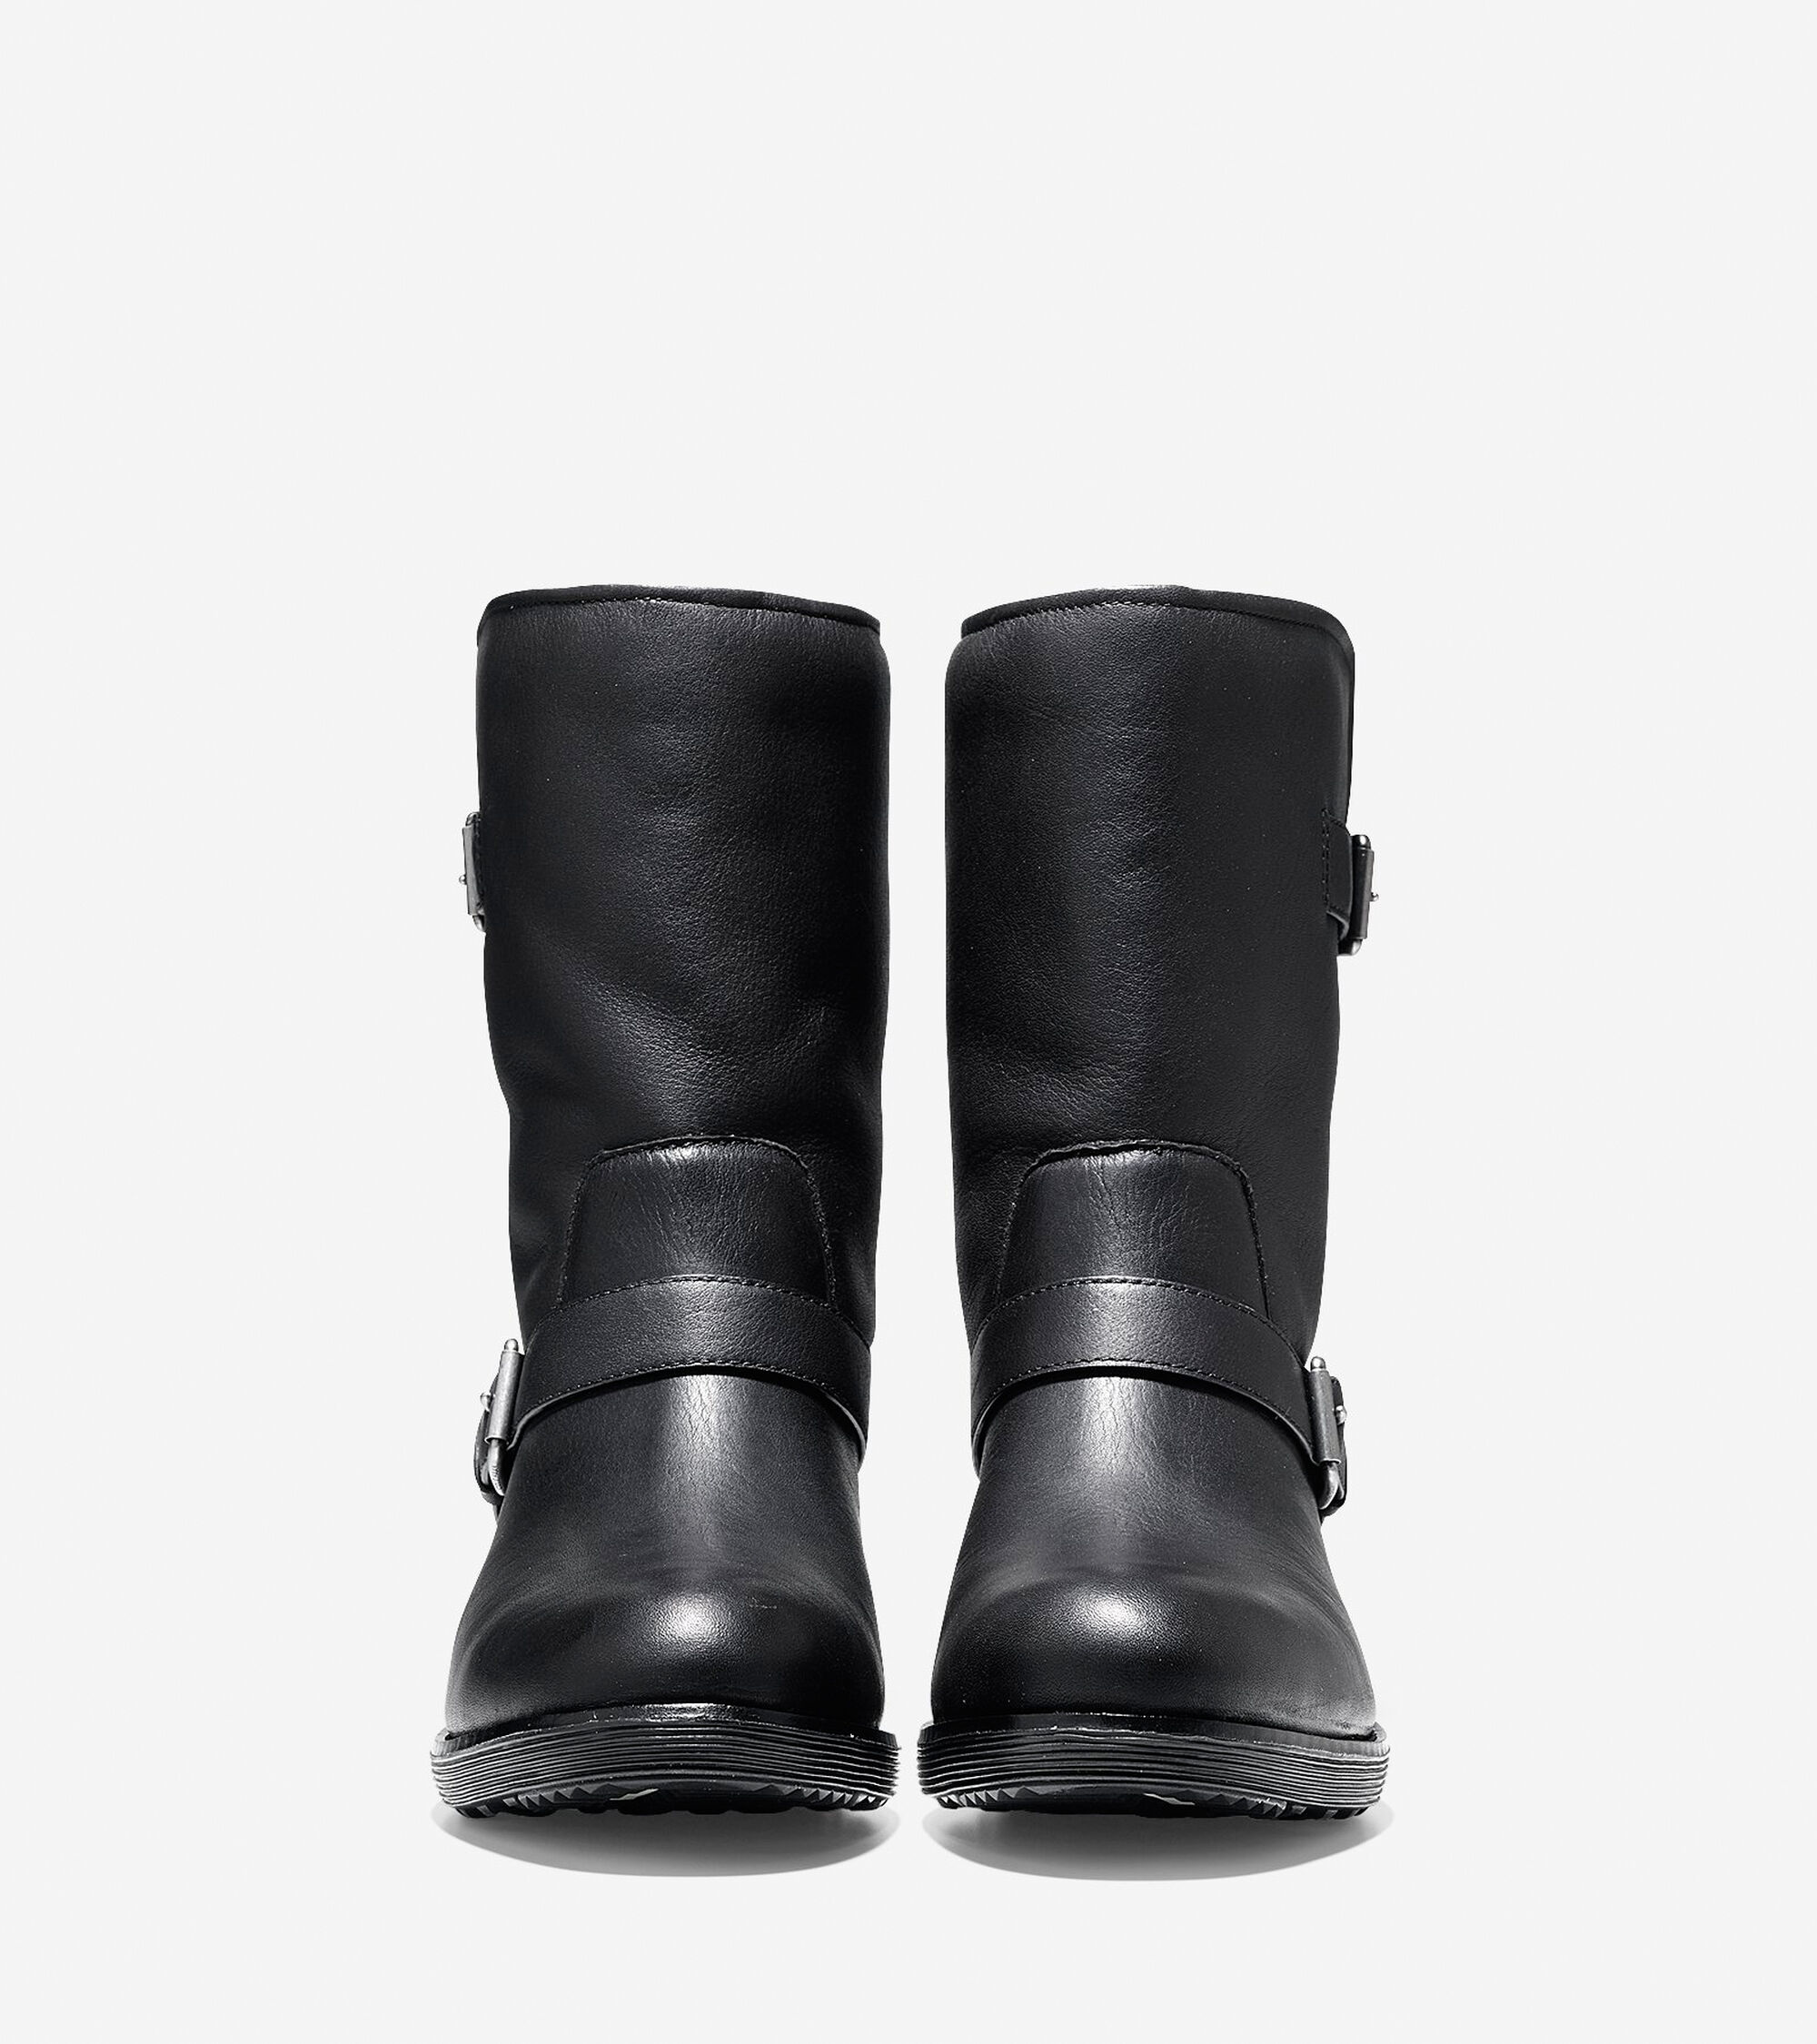 properly helpful hiker in worried boots using no out timber at grisport for the right wearing walking from i they comforter however very them all review without walk was comfortable a were about had issues on